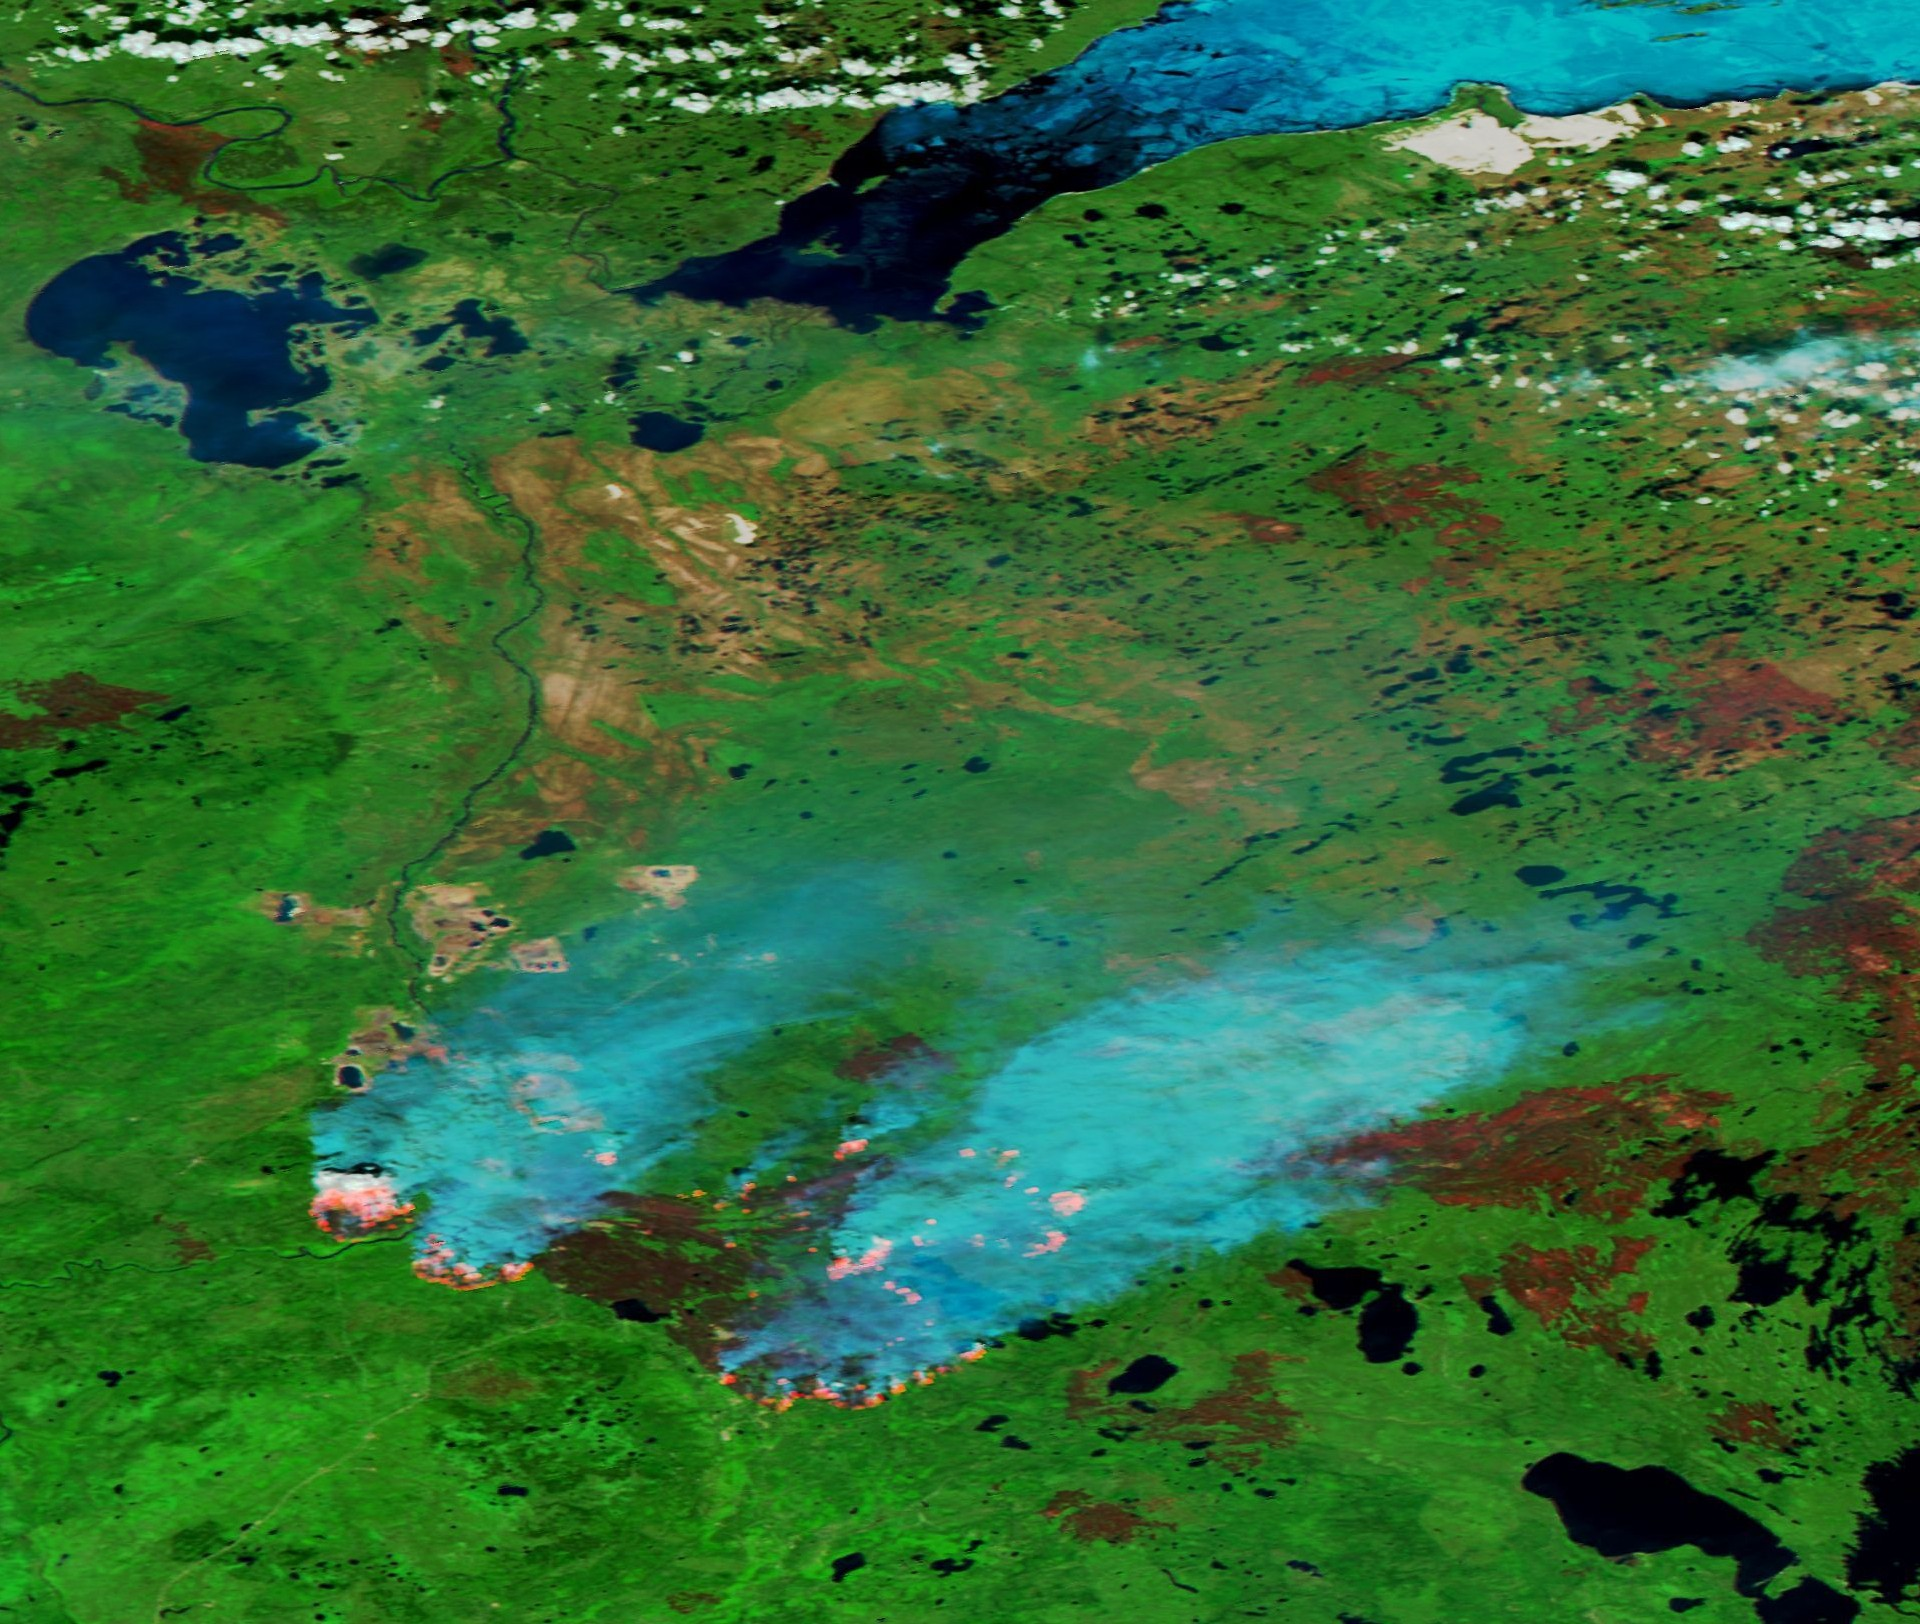 Fort McMurray - SUOMI NPP - VIIRS - 1- mai 2016 - Wild fires - Feux - Alberta - Satellite d'observation